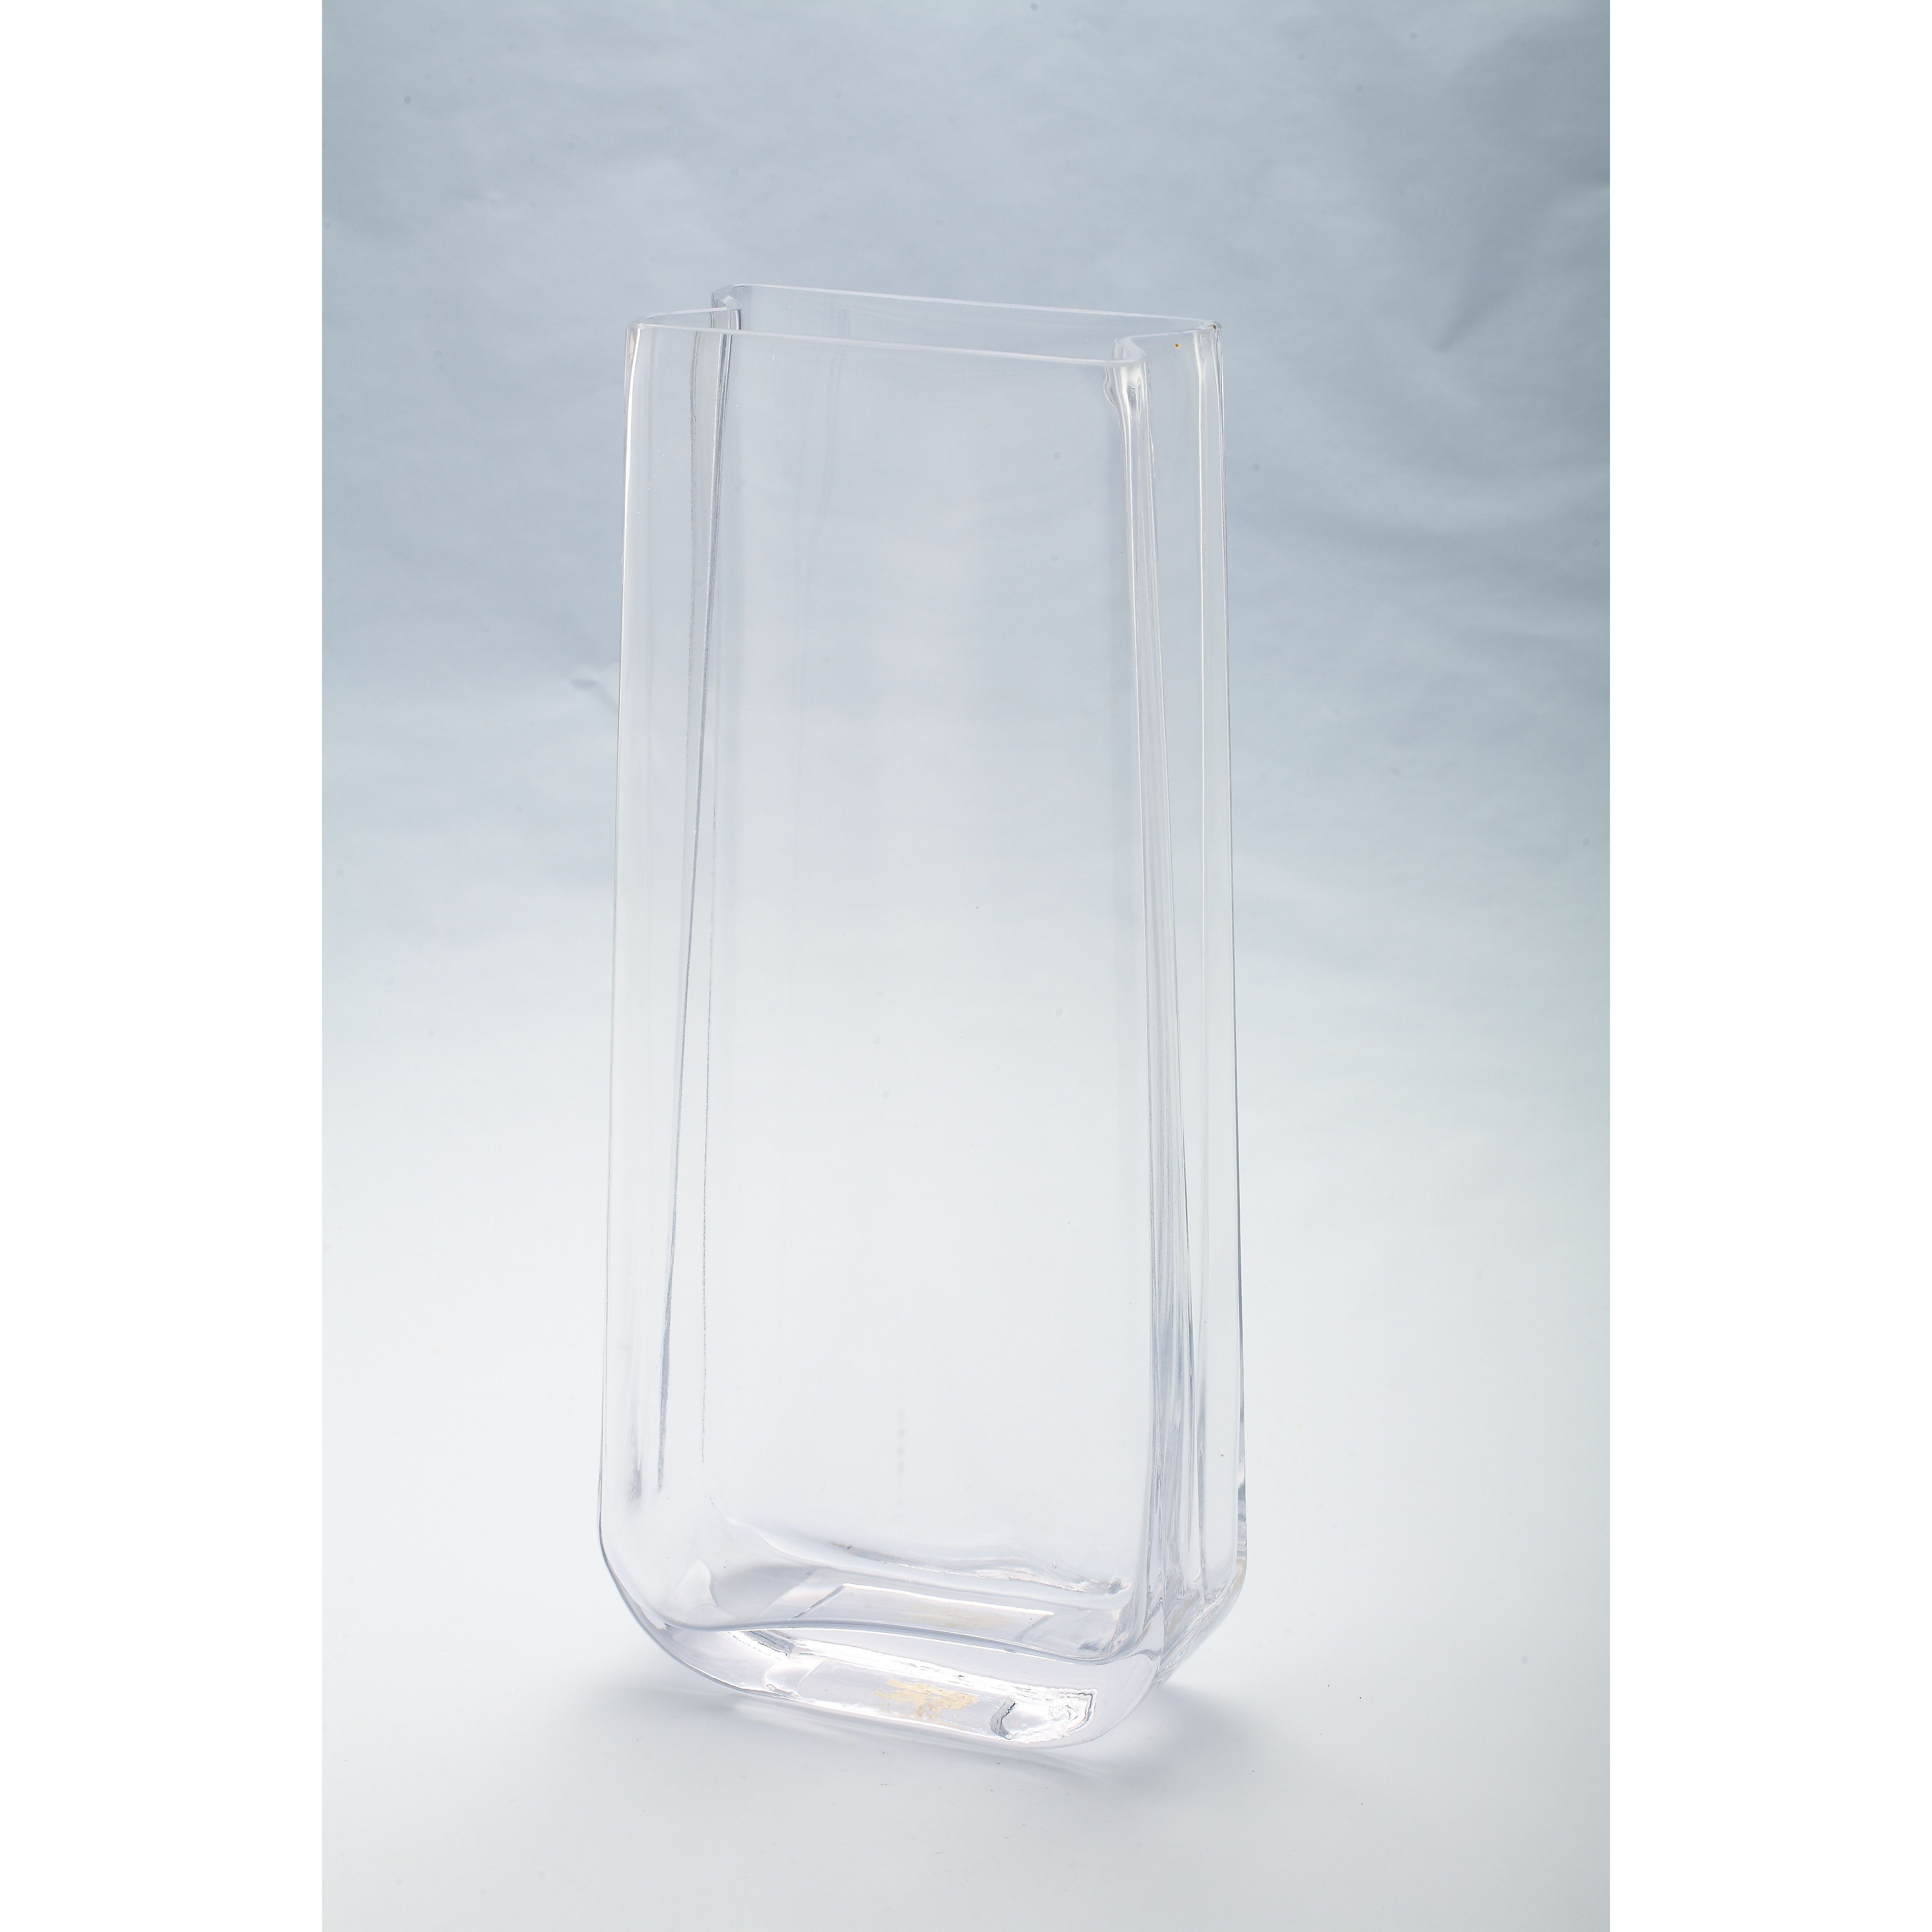 blue green glass vase of rent glass vases image door glass luxury 2 h vases vase rental nyc i throughout gallery of rent glass vases